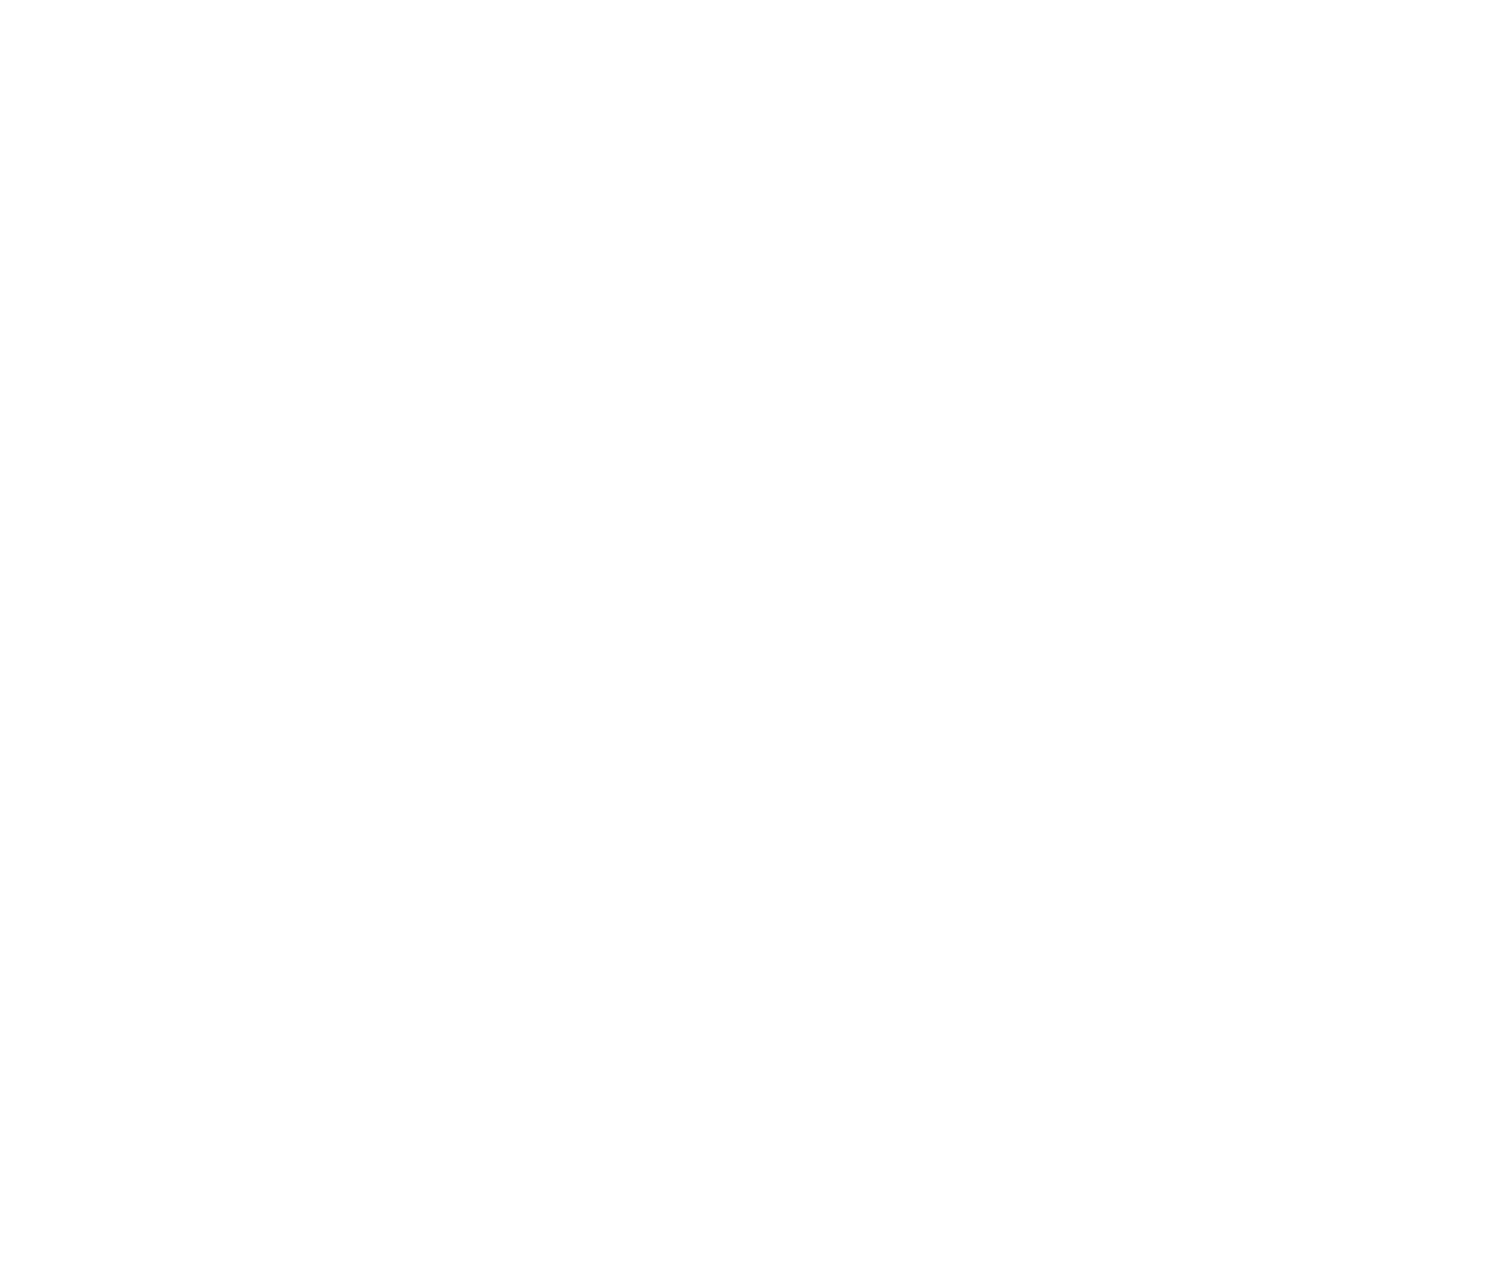 Peachtree House Market